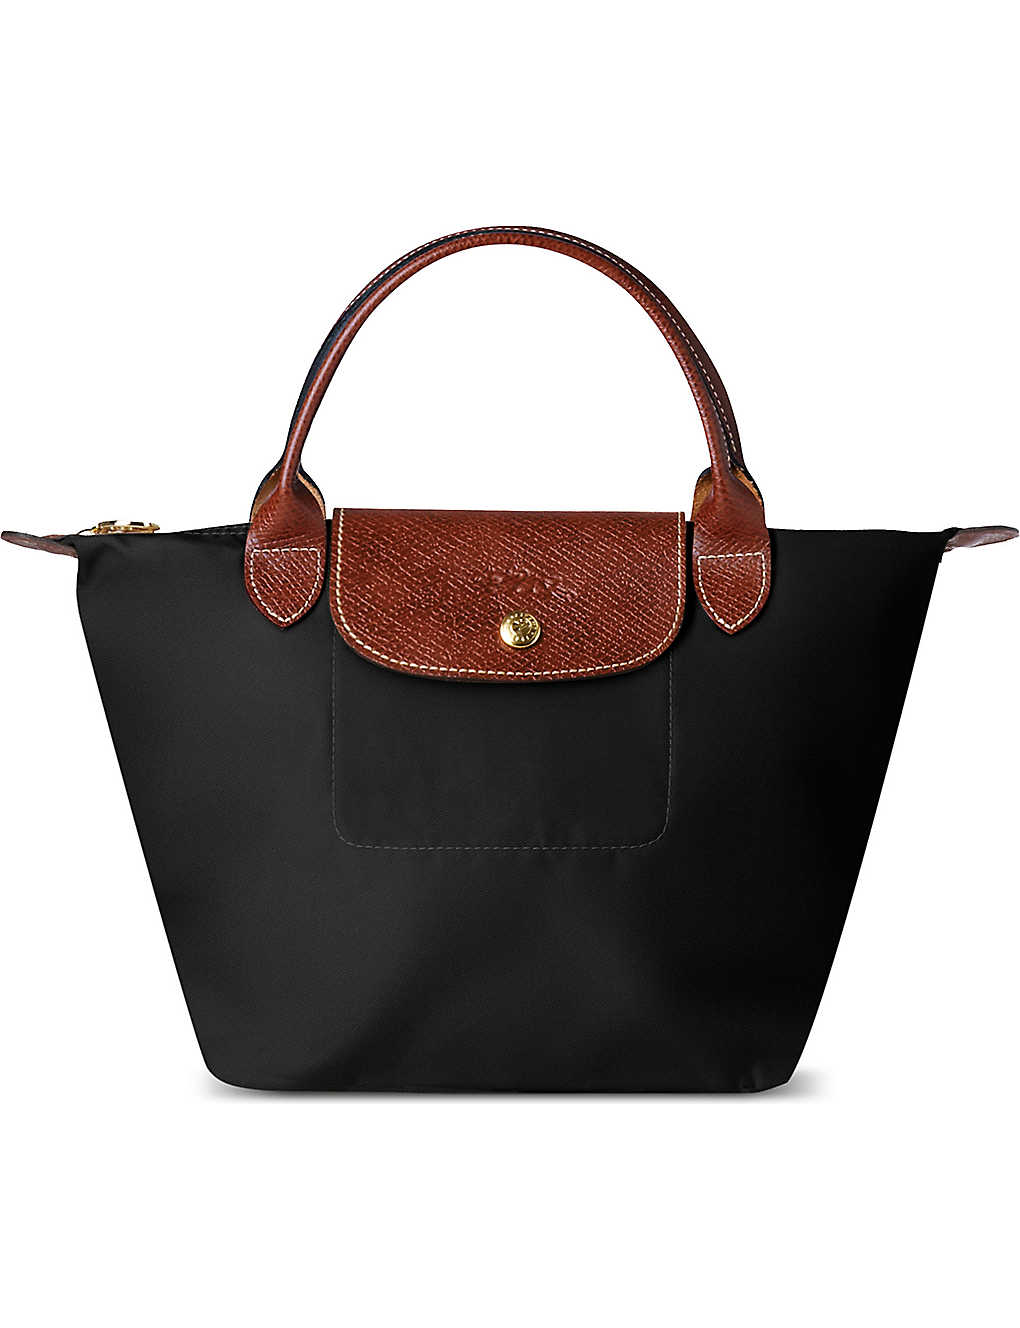 270e4b820085 LONGCHAMP - Le Pliage small handbag